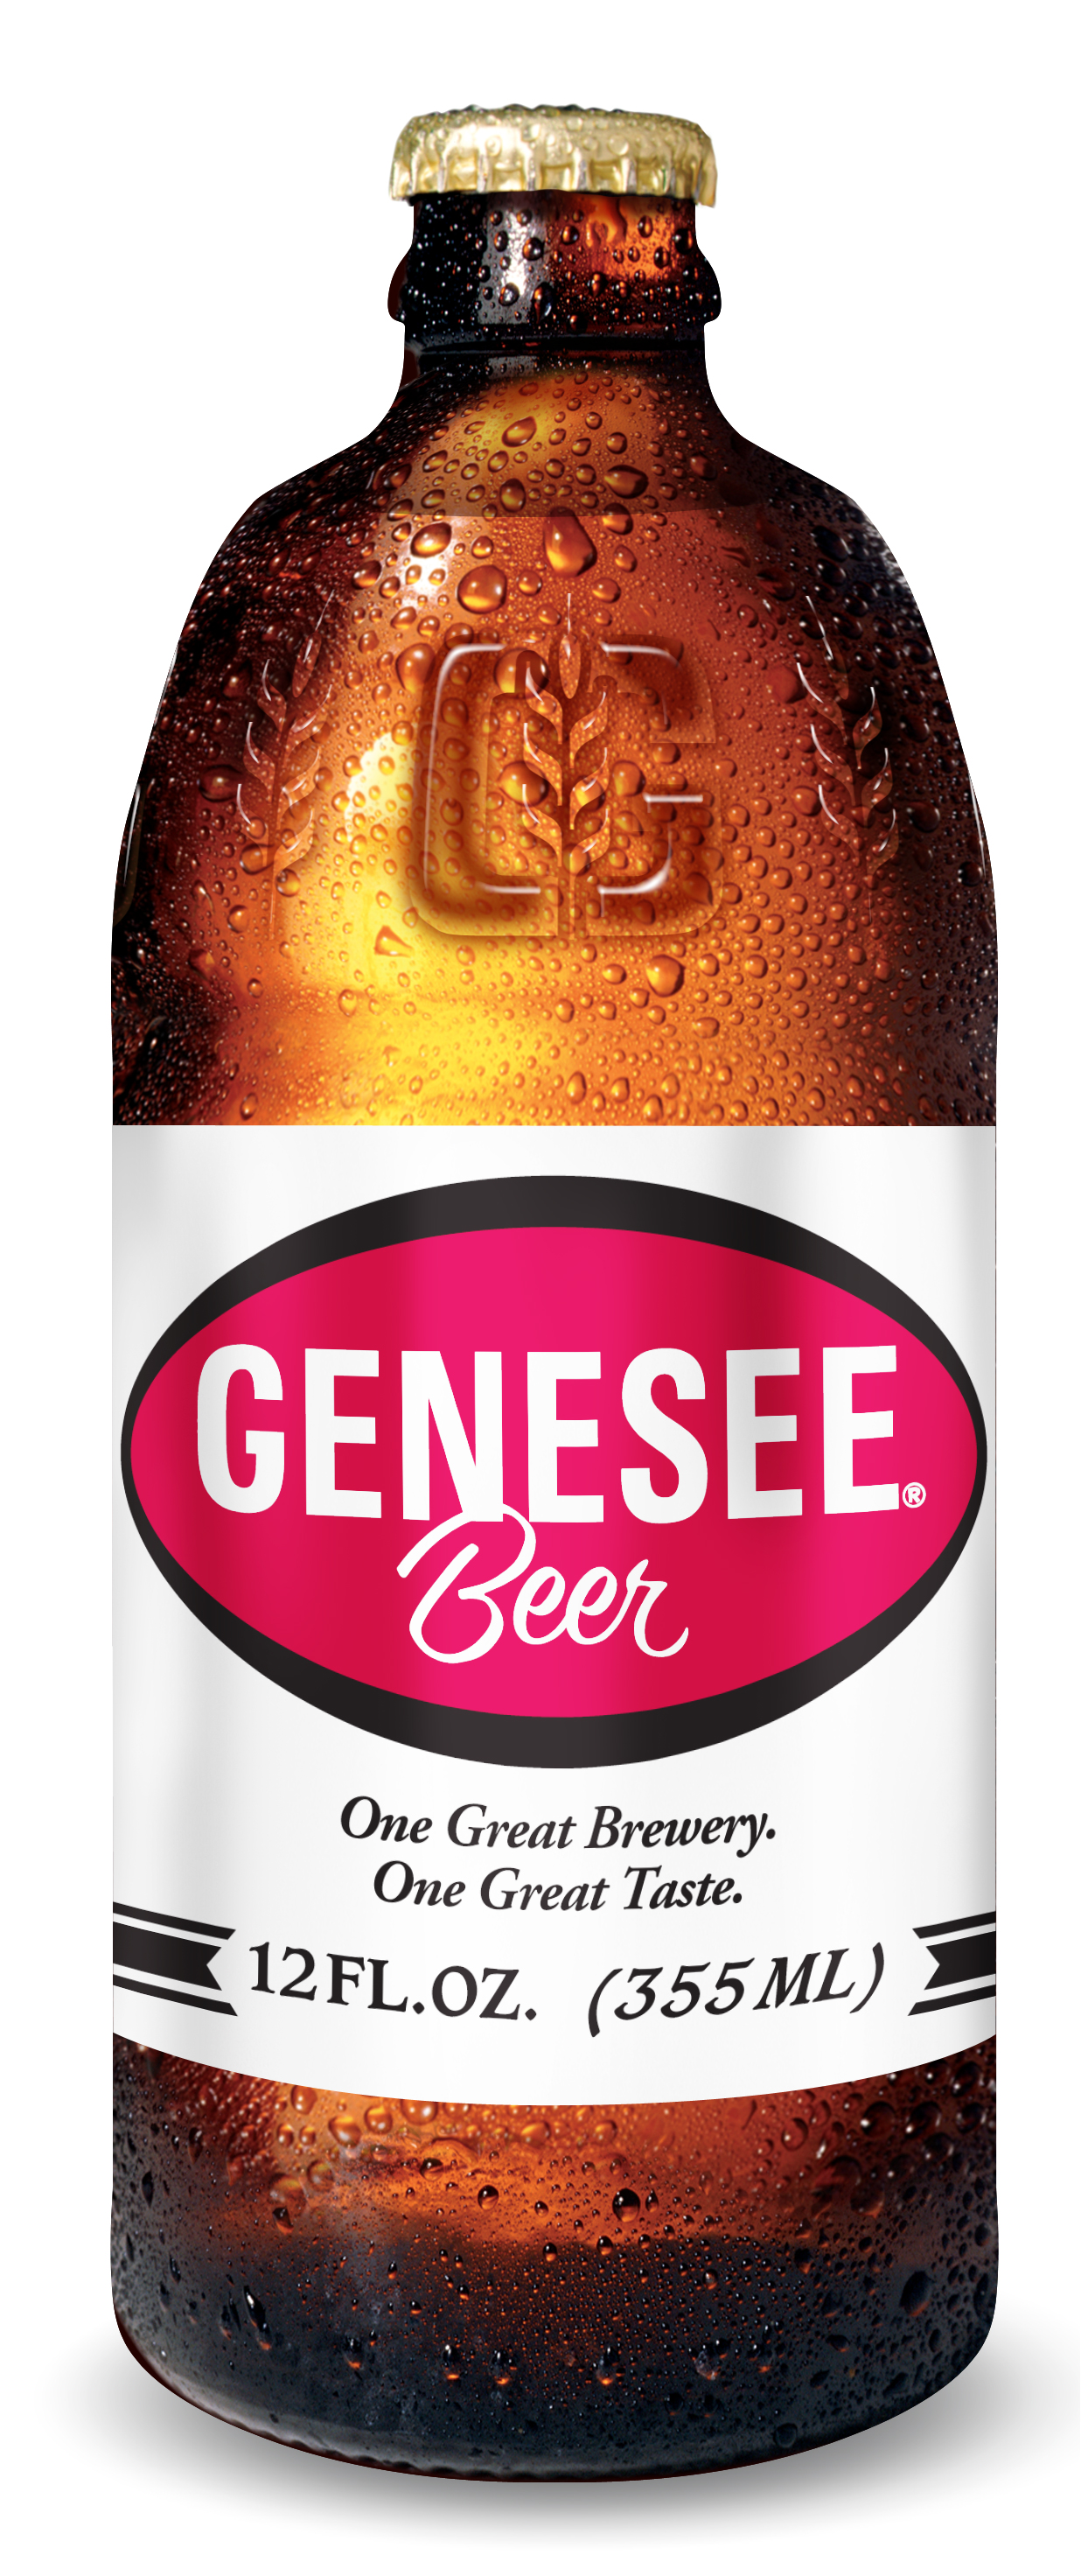 Genesee Beer returns to its roots.